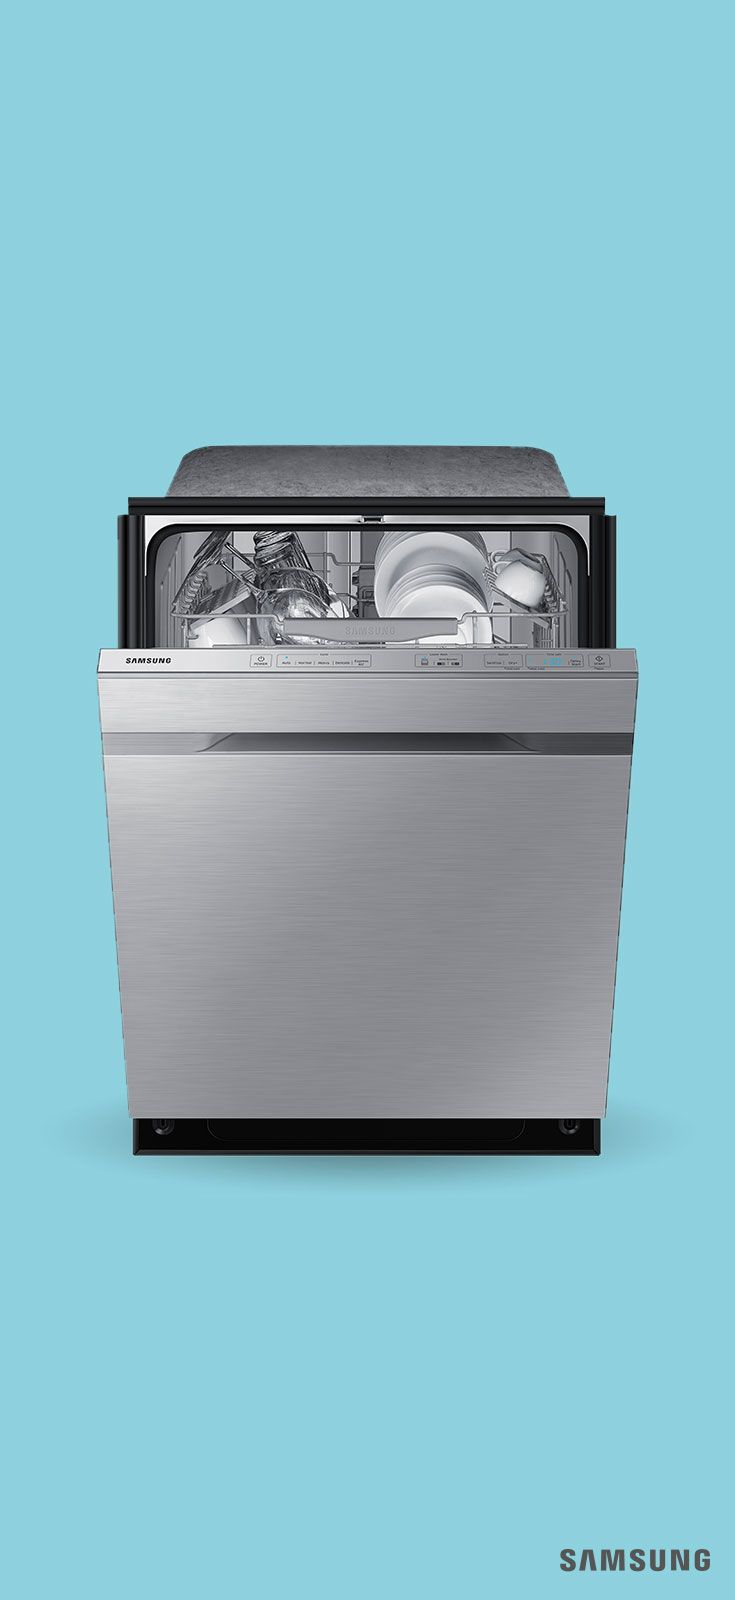 This Samsung Dishwasher With Waterwall Technology Uses A Powerful